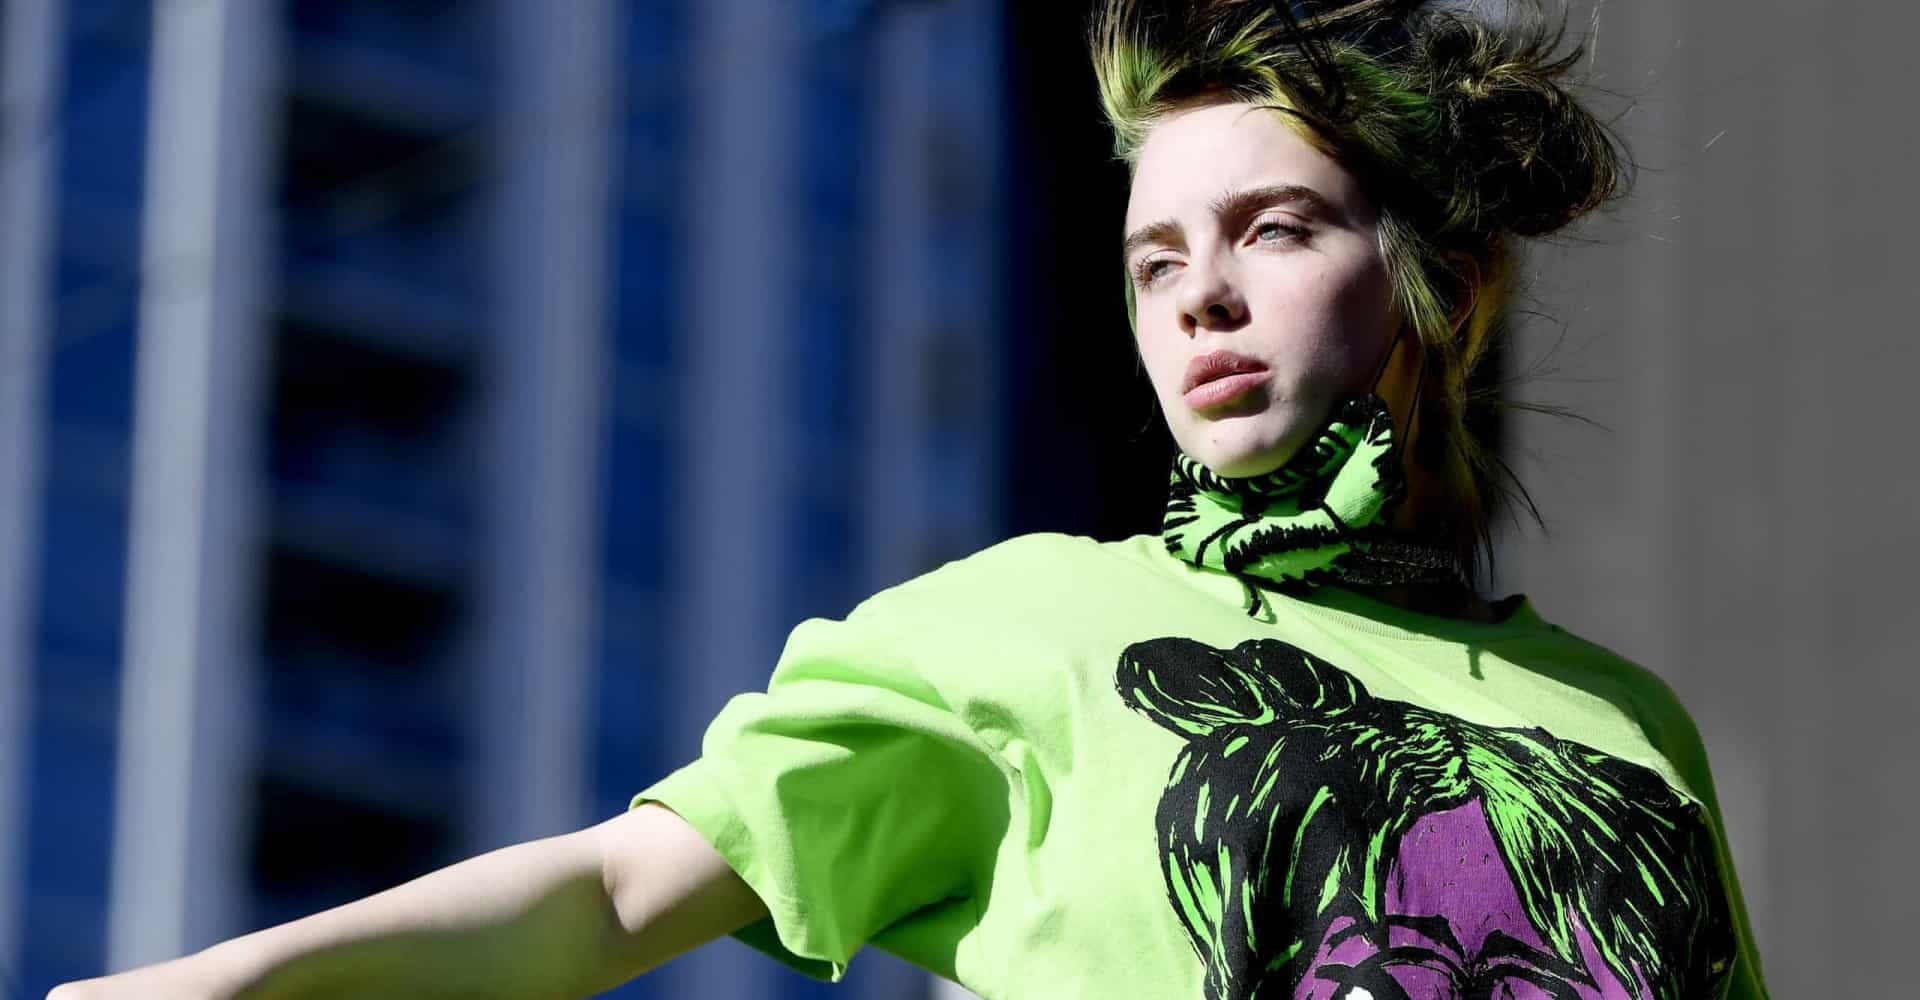 Billie Eilish, l'anti-pop star que l'on attendait tous